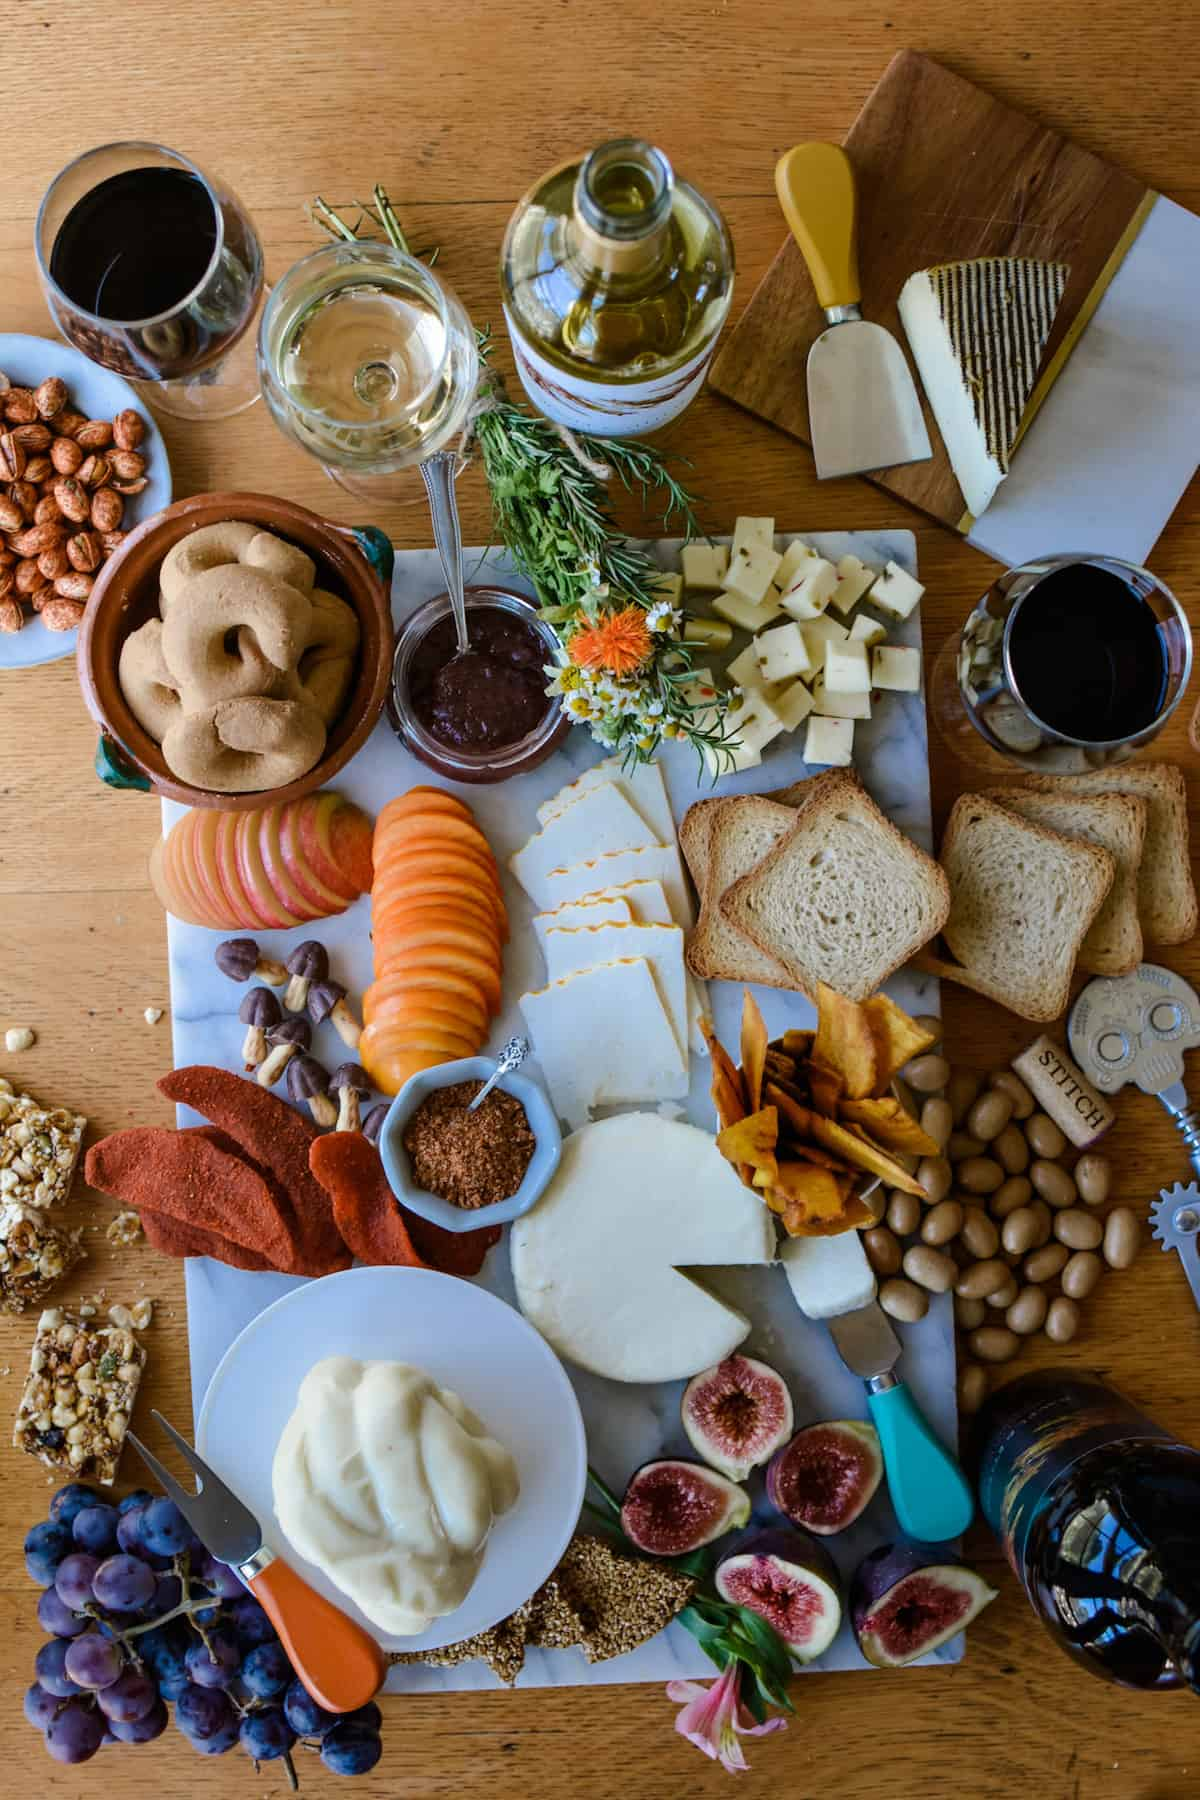 An overhead shot of several cheeses, toasts, figs cut in half, spiced dried mangos, cookies, jam, a bundle of flowers, and glasses of wine.